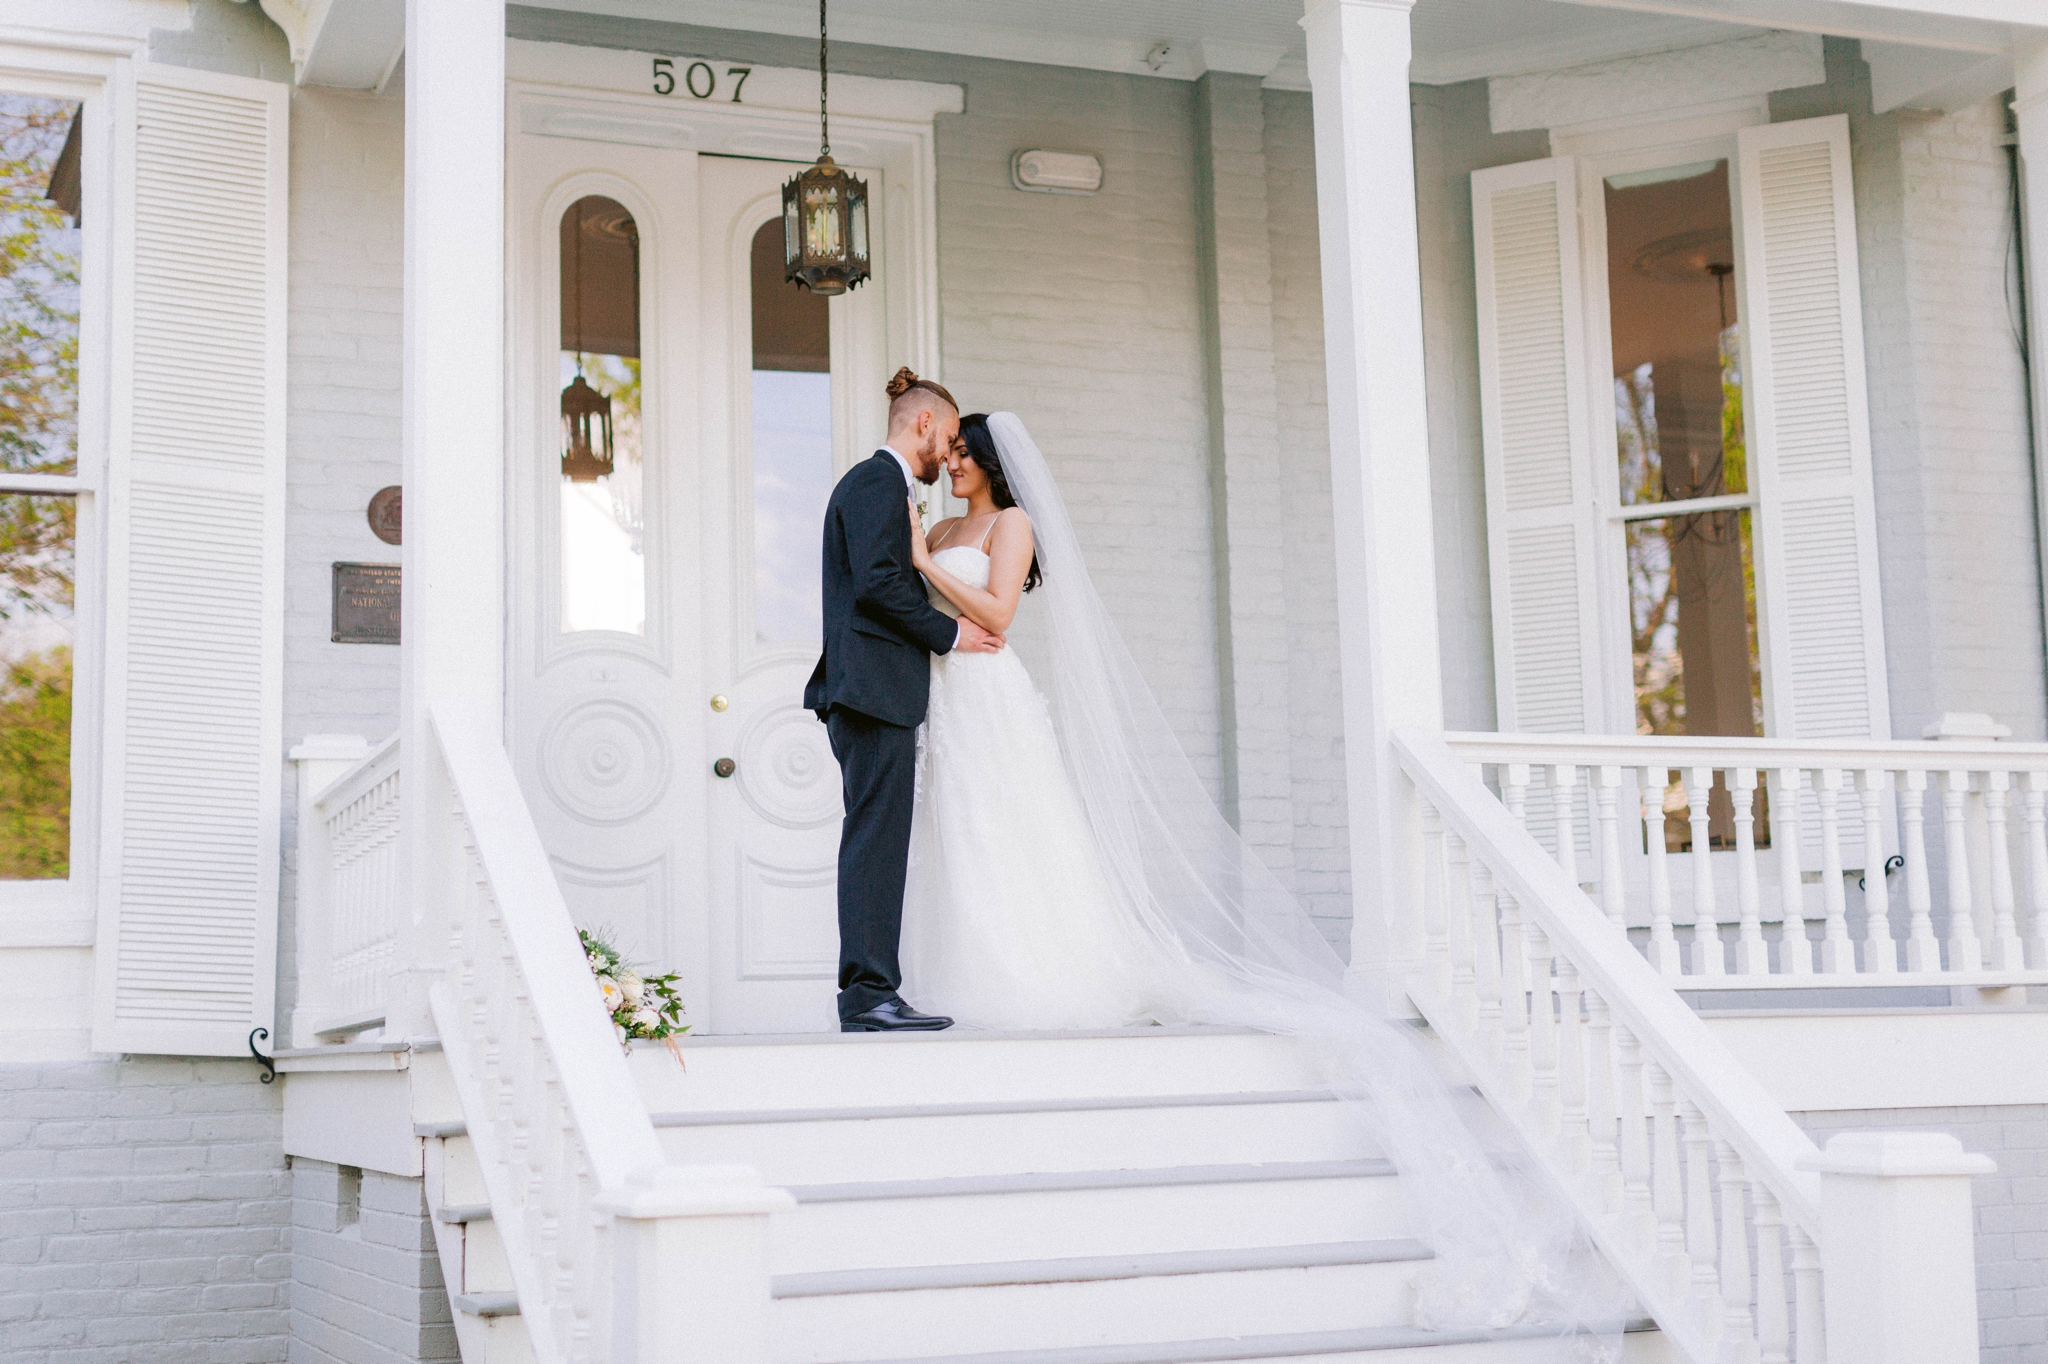 Couple Kissing - Wedding Portraits on the front porch of an all white luxury estate mansion - Bride is wearing a Aline Ballgown by Cherish by Southern Bride with a long cathedral veil - Groom is wearing a black suit by Generation Tux and has a man bun - Fine Art Honolulu Oahu Hawaii Wedding Photographer - Johanna Dye Photography - edited with for the love of film presets by jose villa